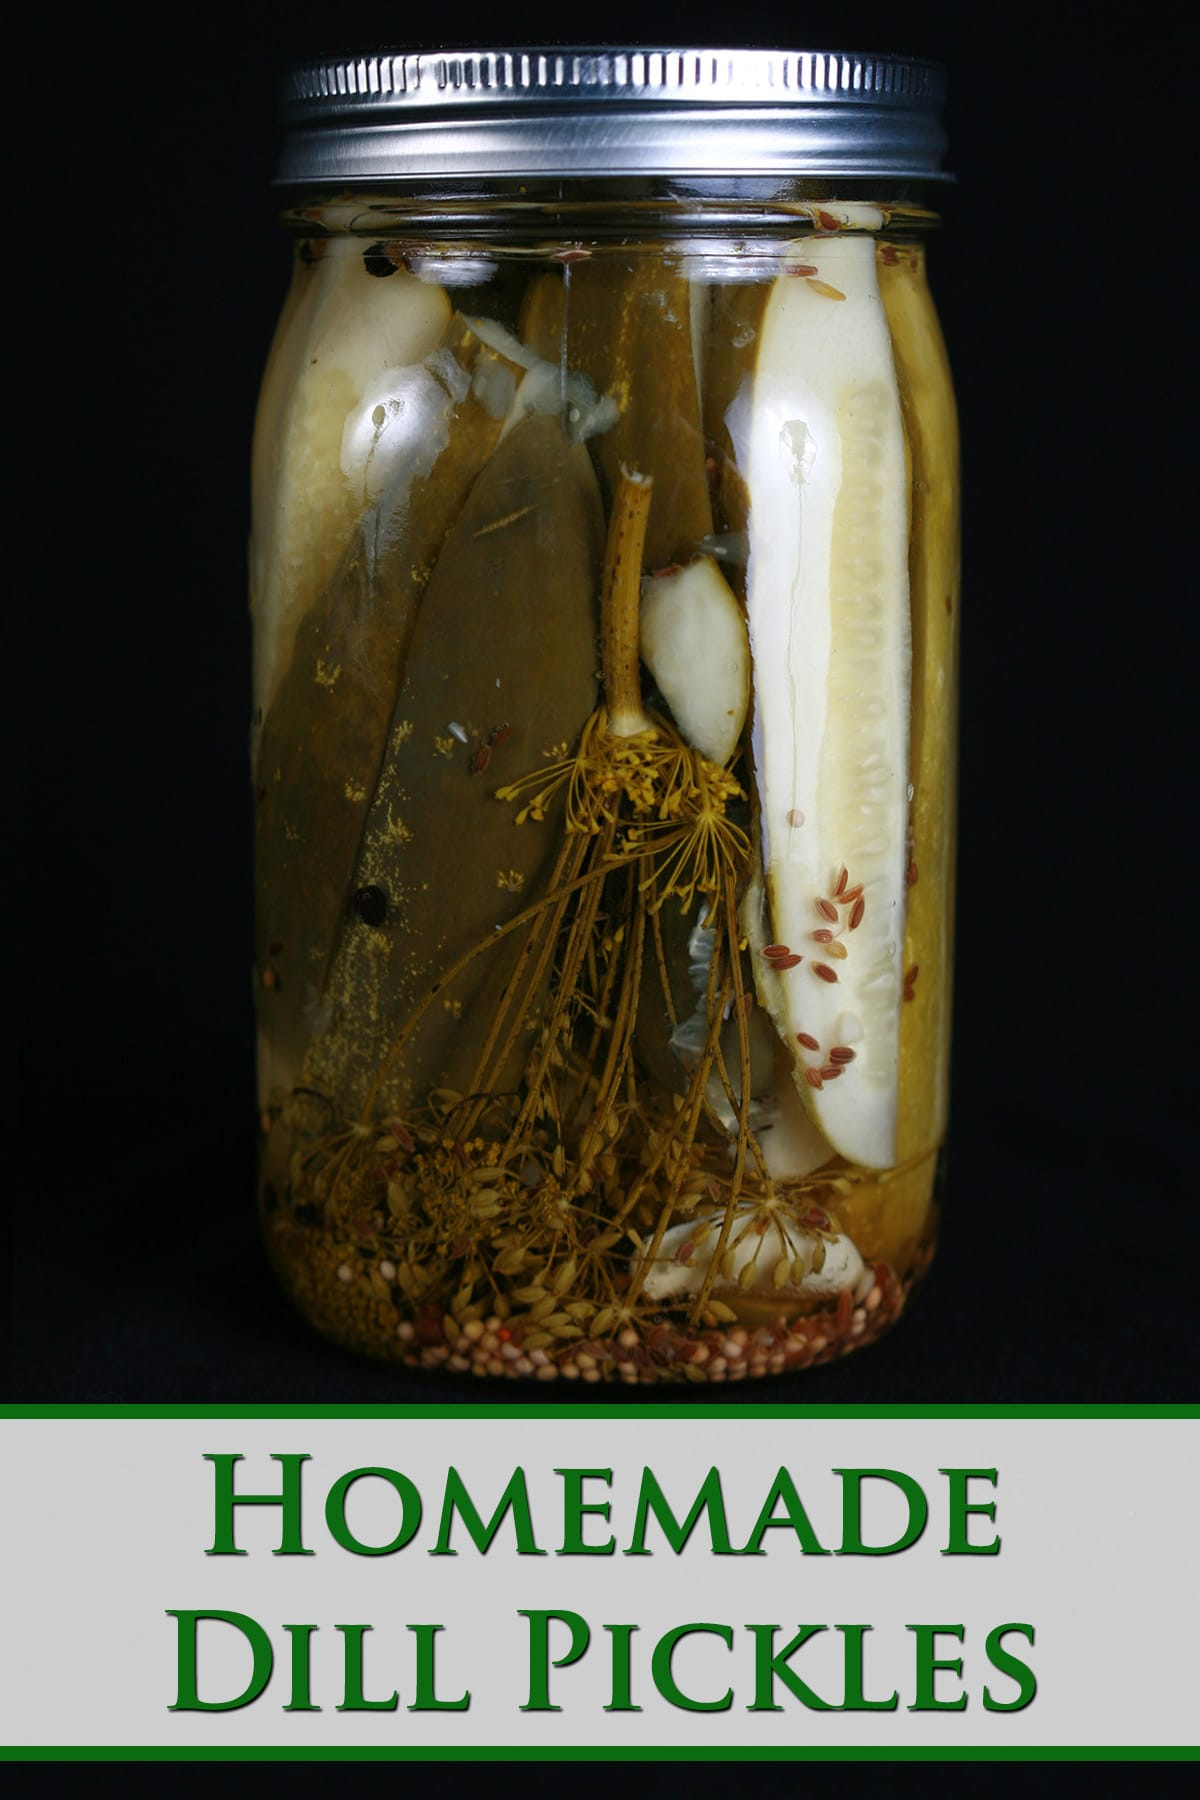 A jar of homemade dill pickles.